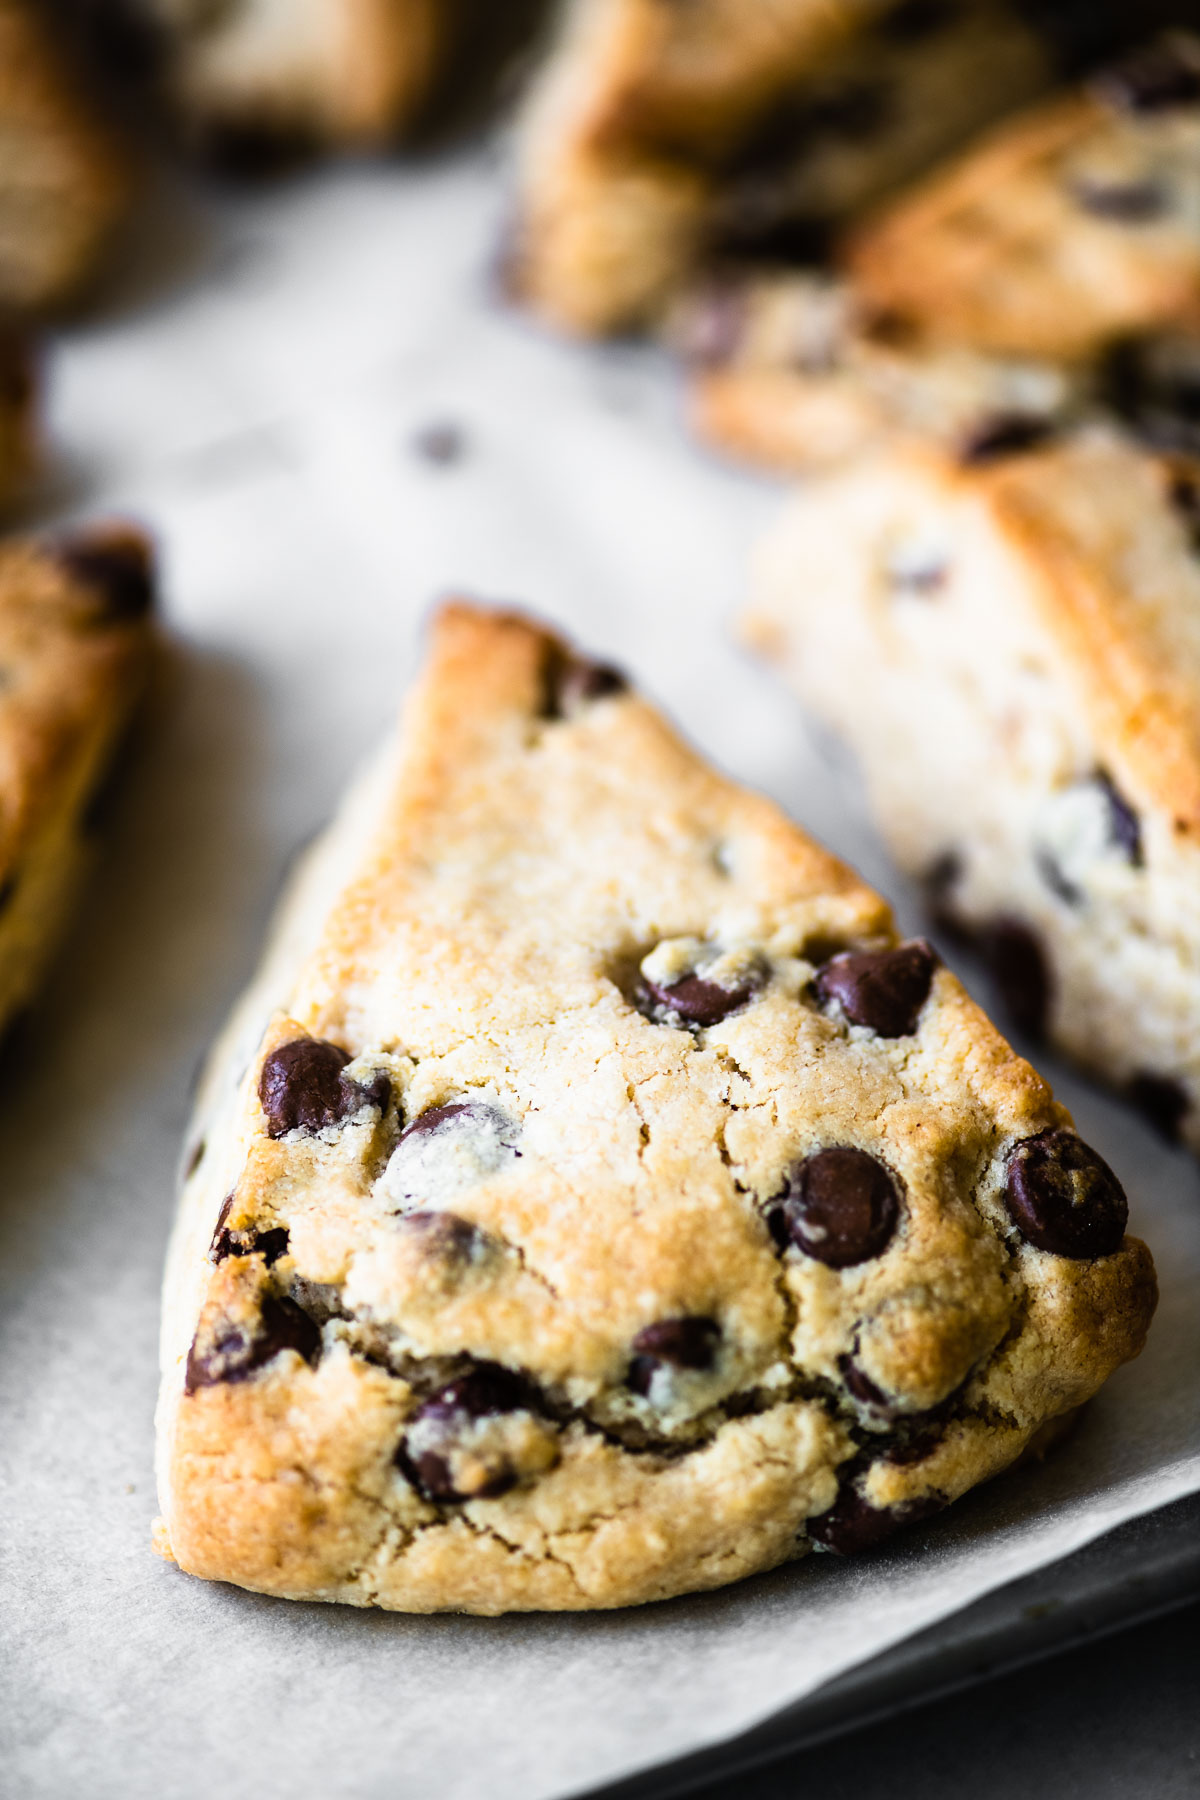 a peanut butter chocolate chip scone on parchment